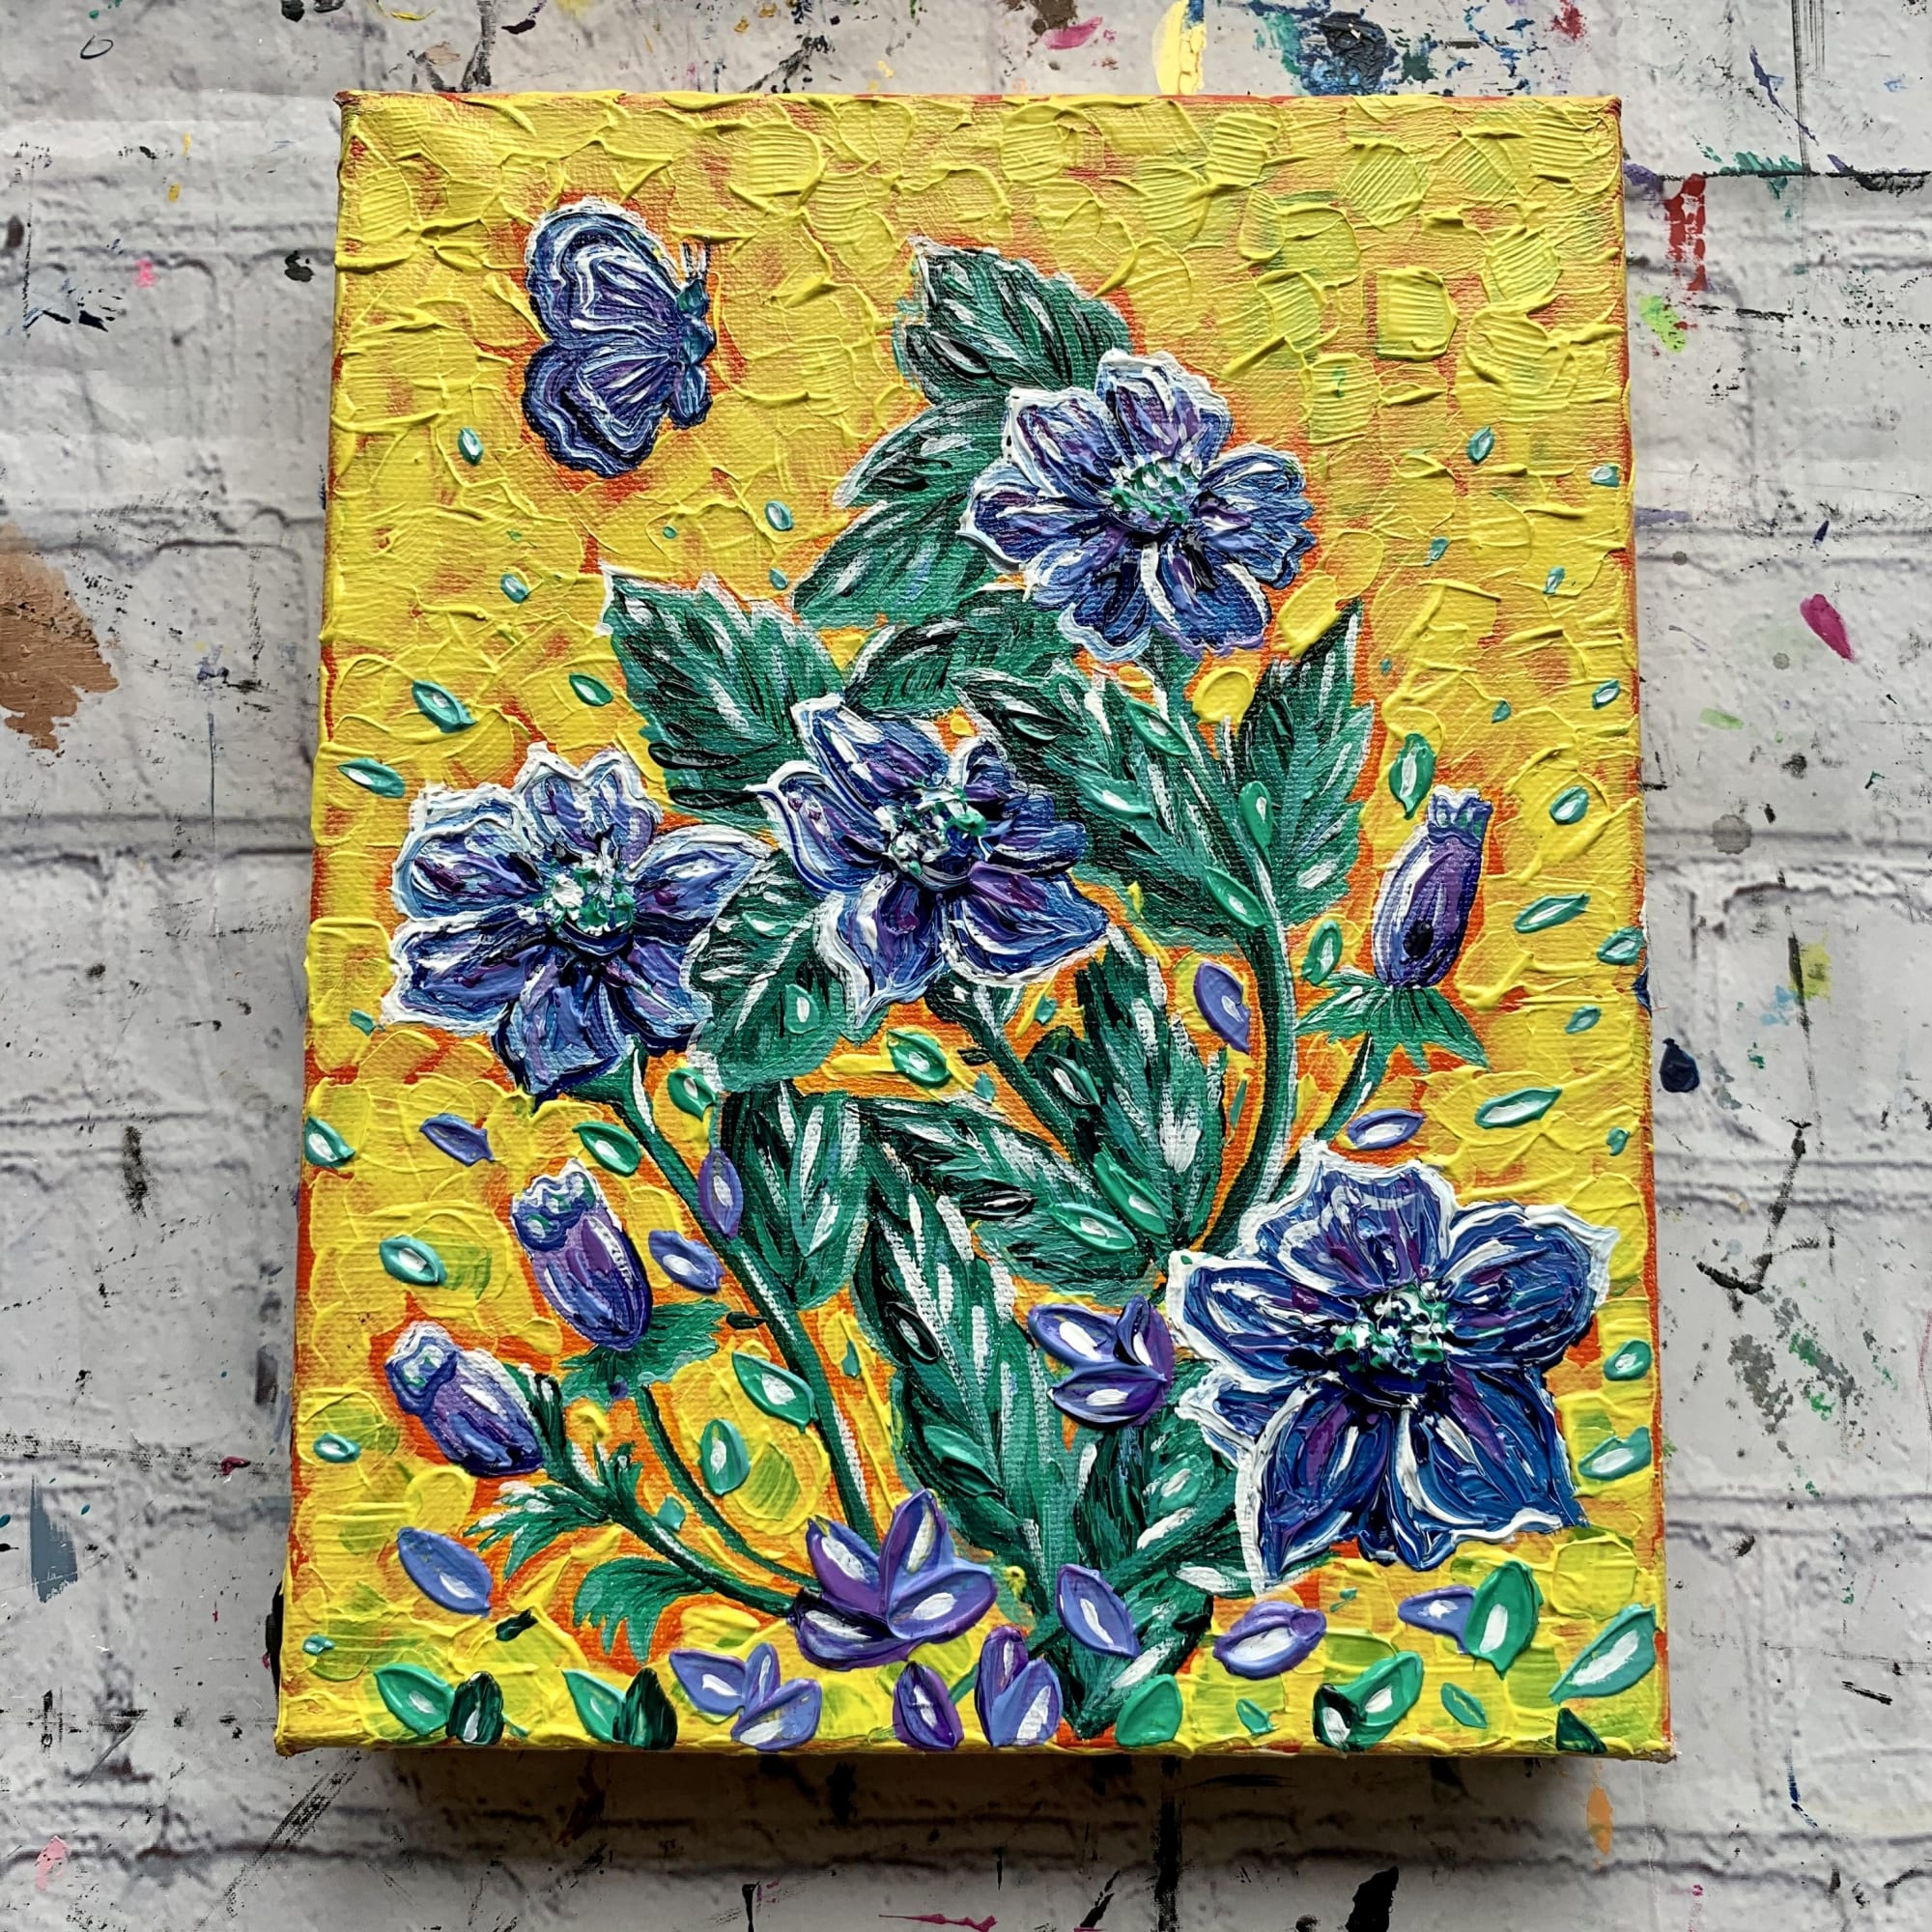 Blue and green on yellow flower painting